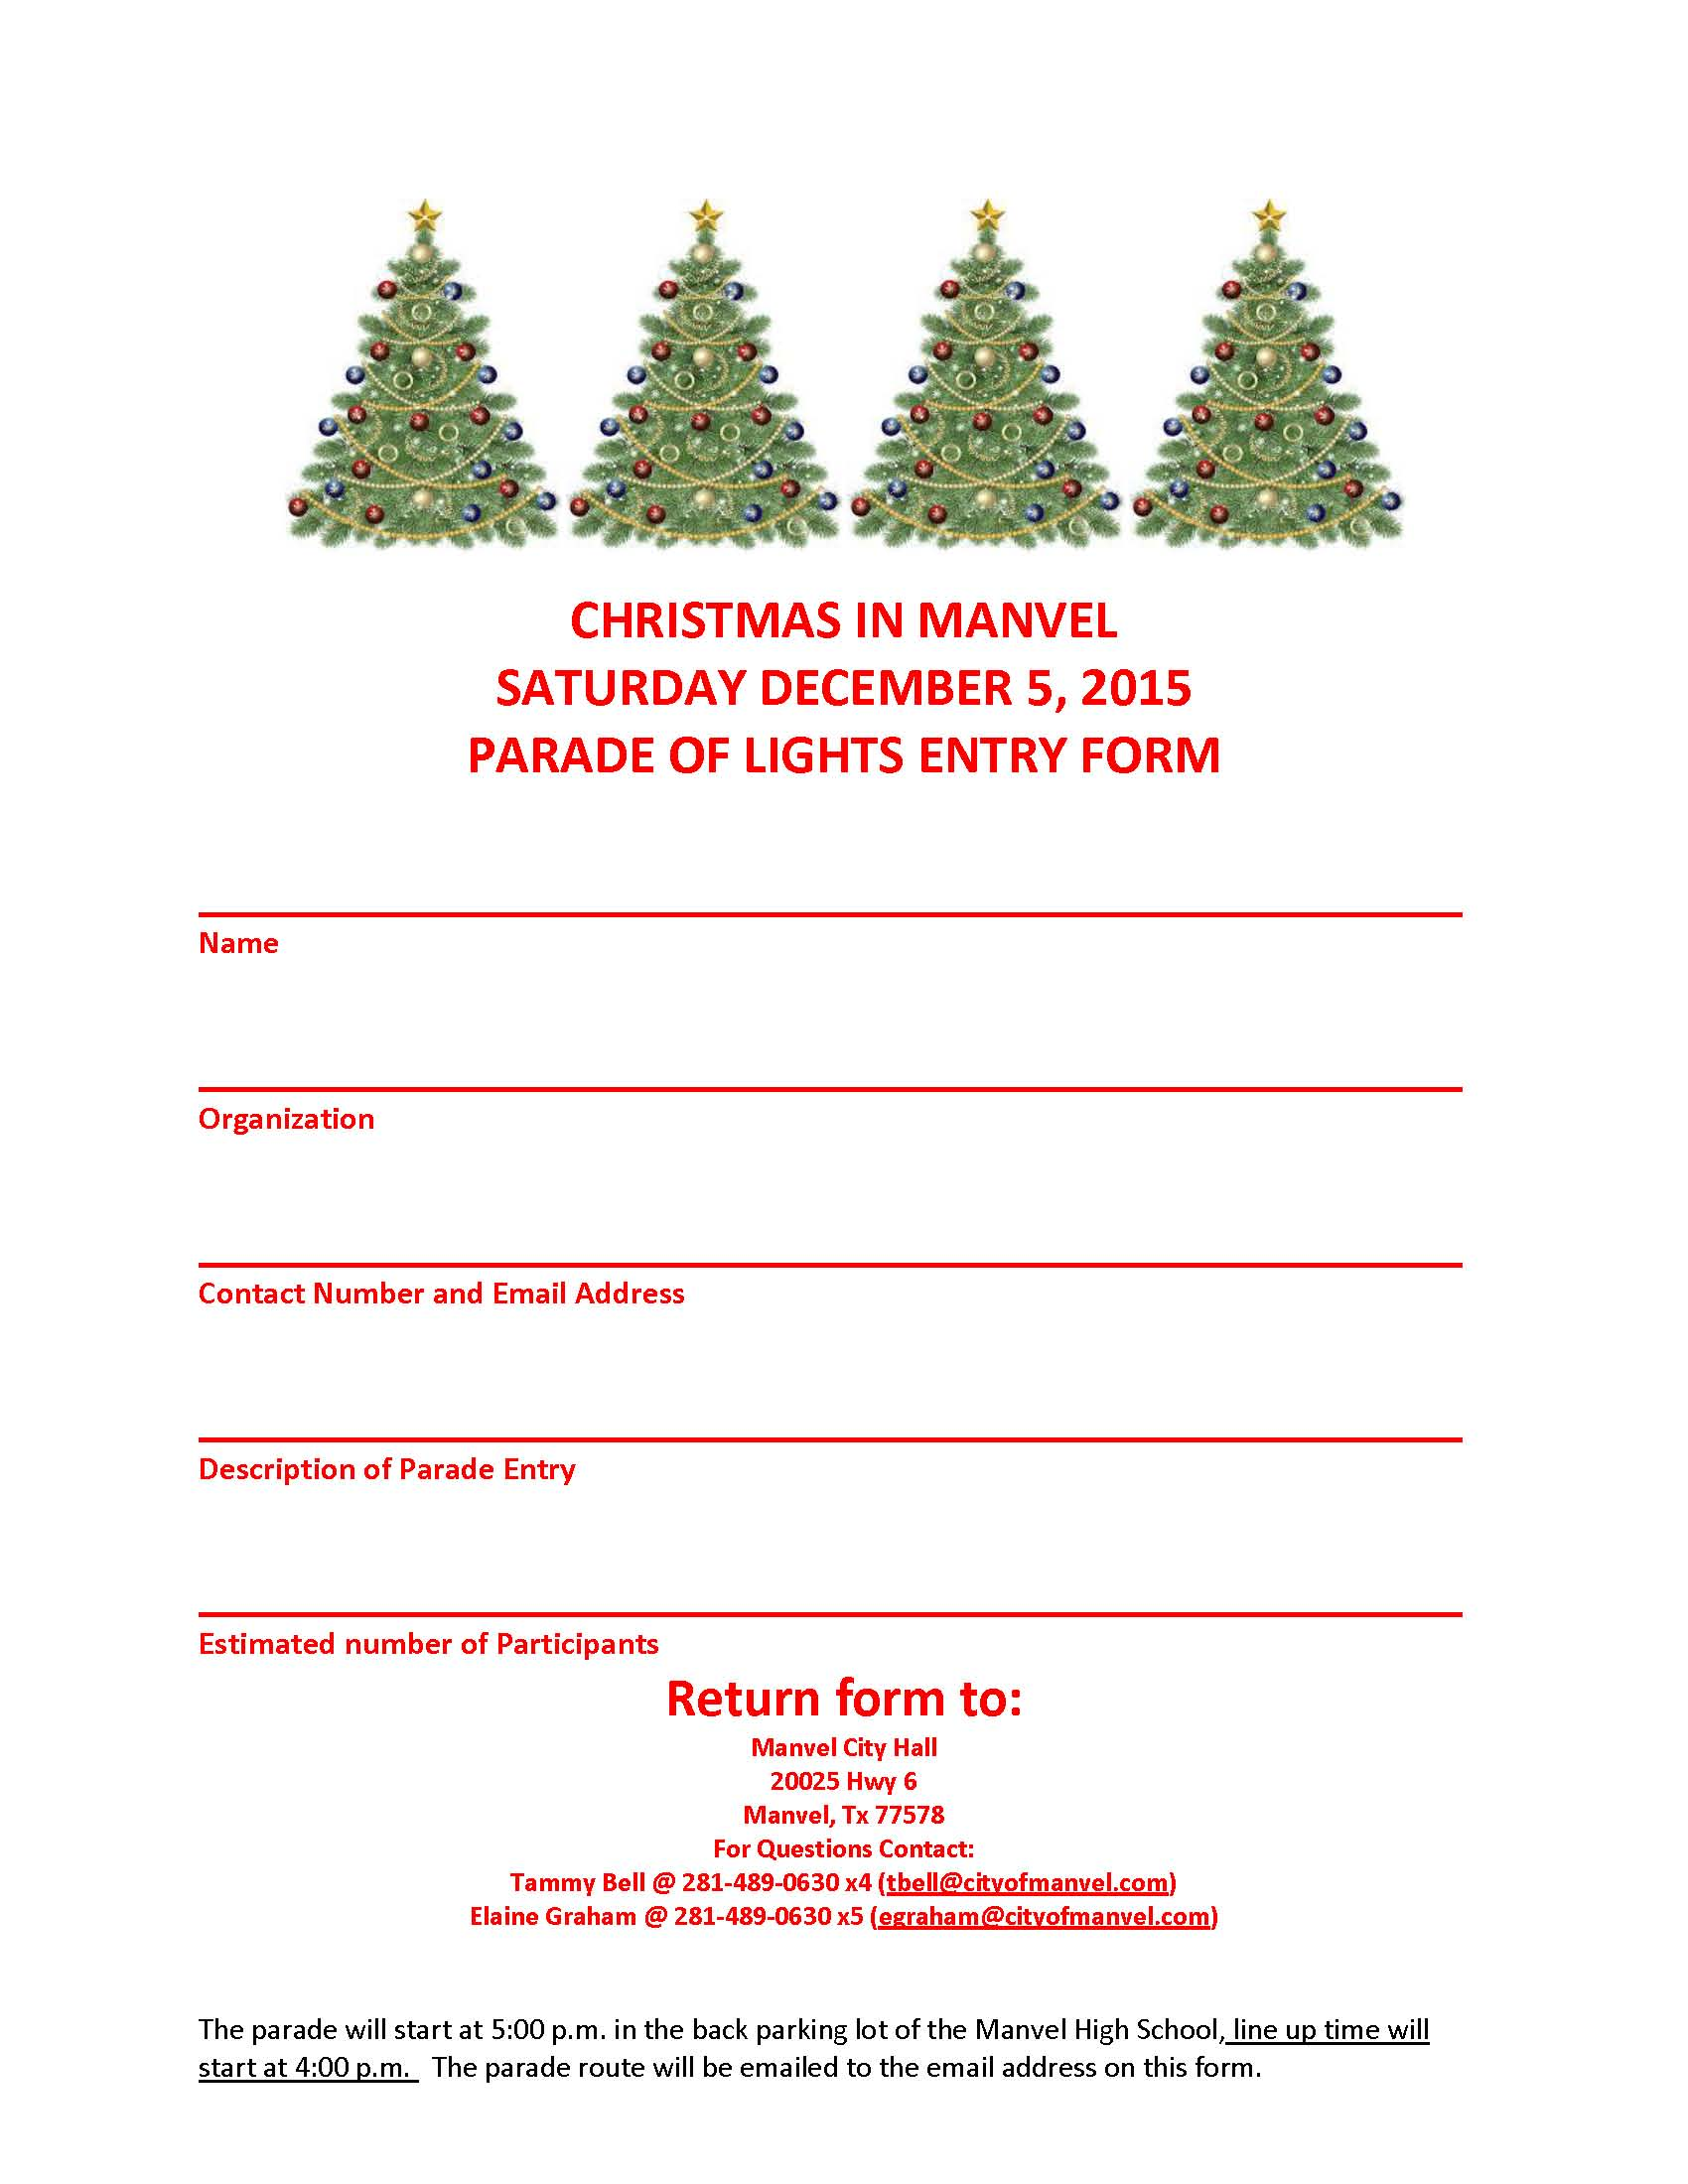 CHRISTMAS IN MANVEL PARADE FORM 2015